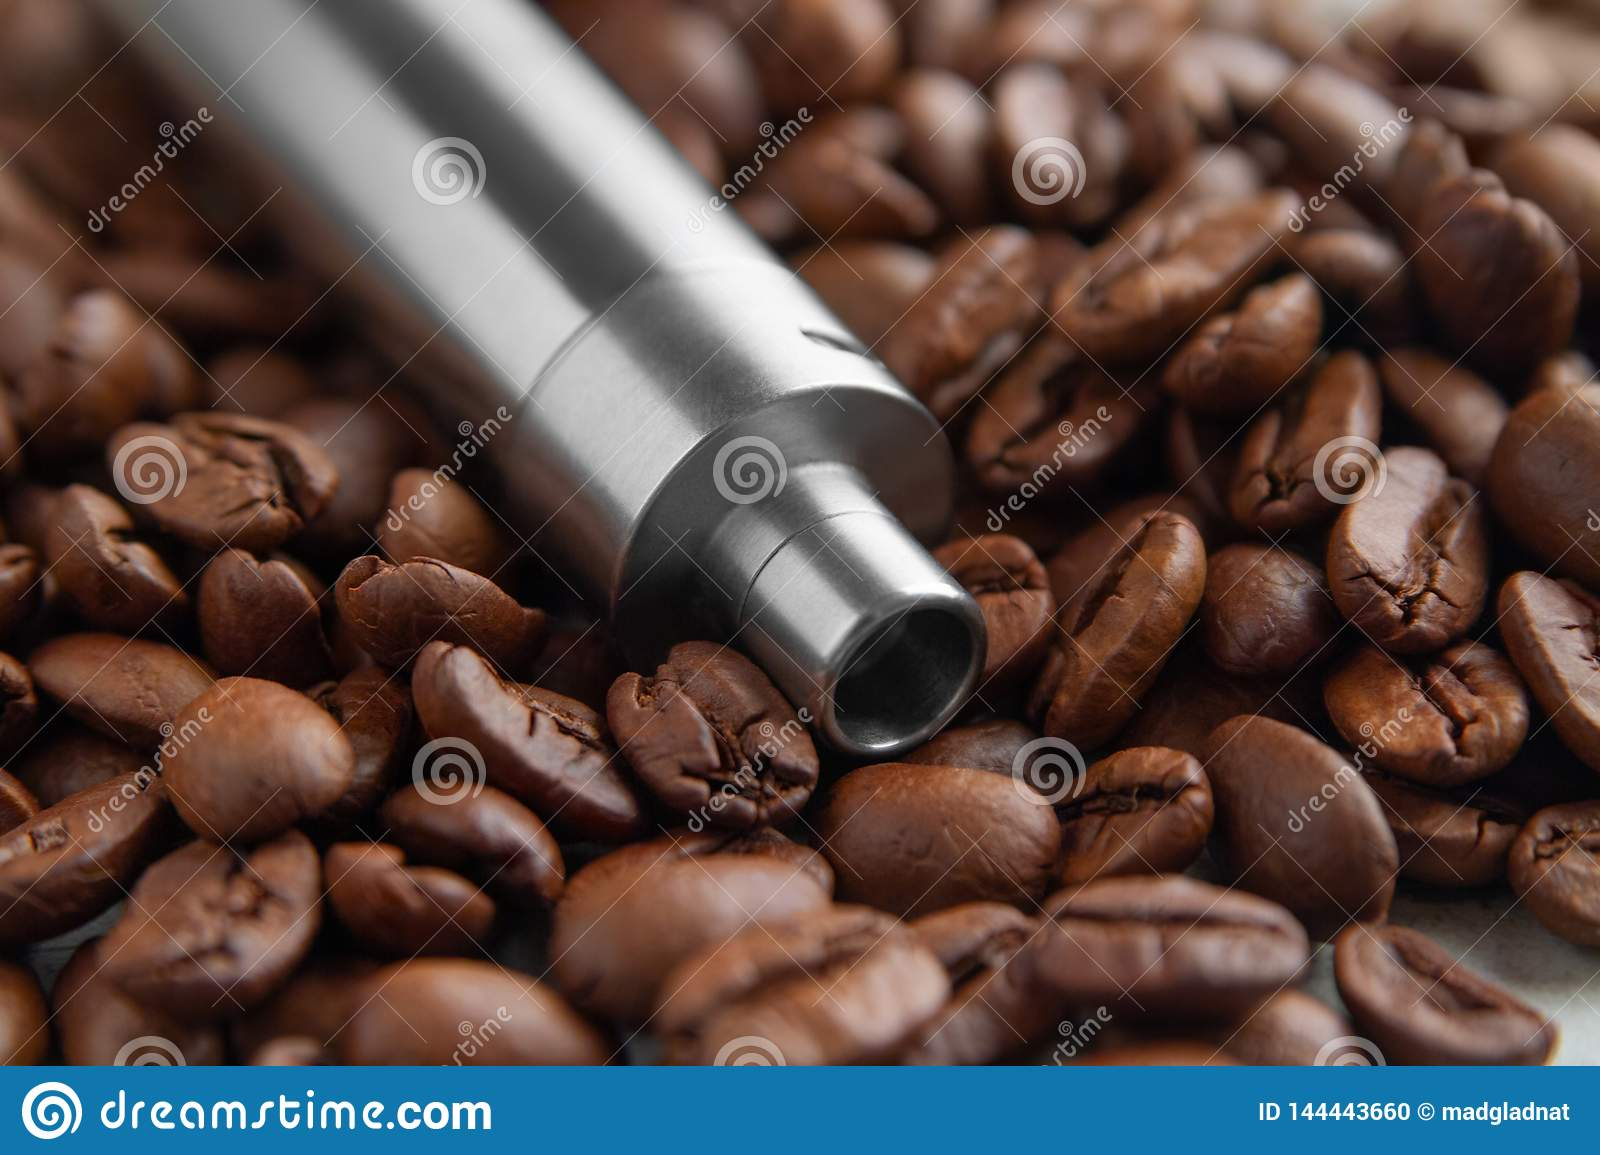 Vape device on the background of coffee beans